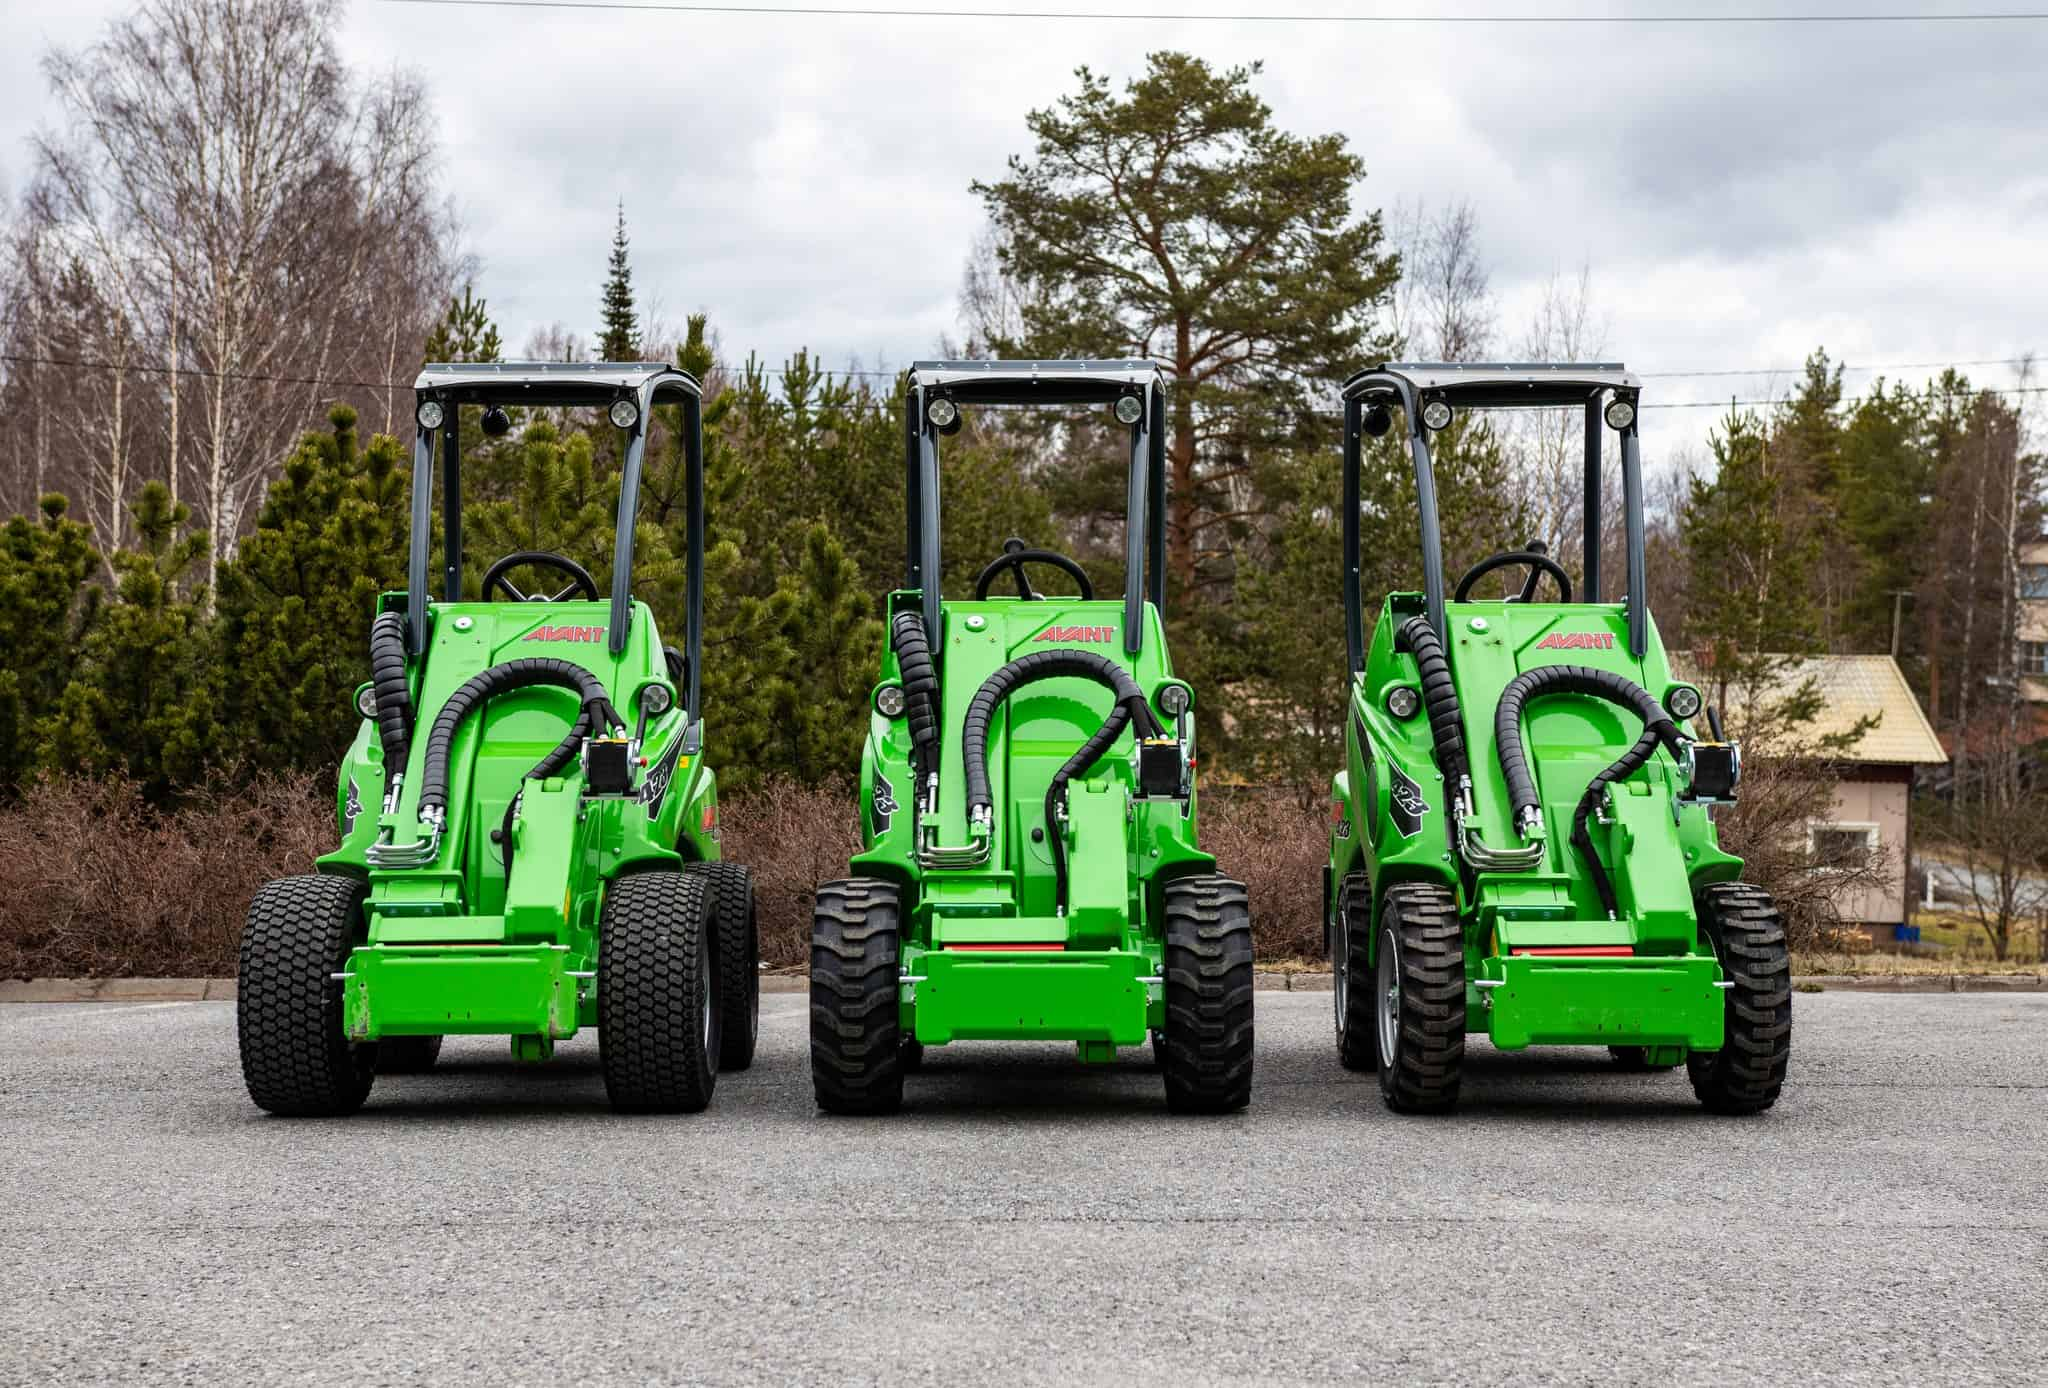 Open the door for the narrower Avant 423 compact loader